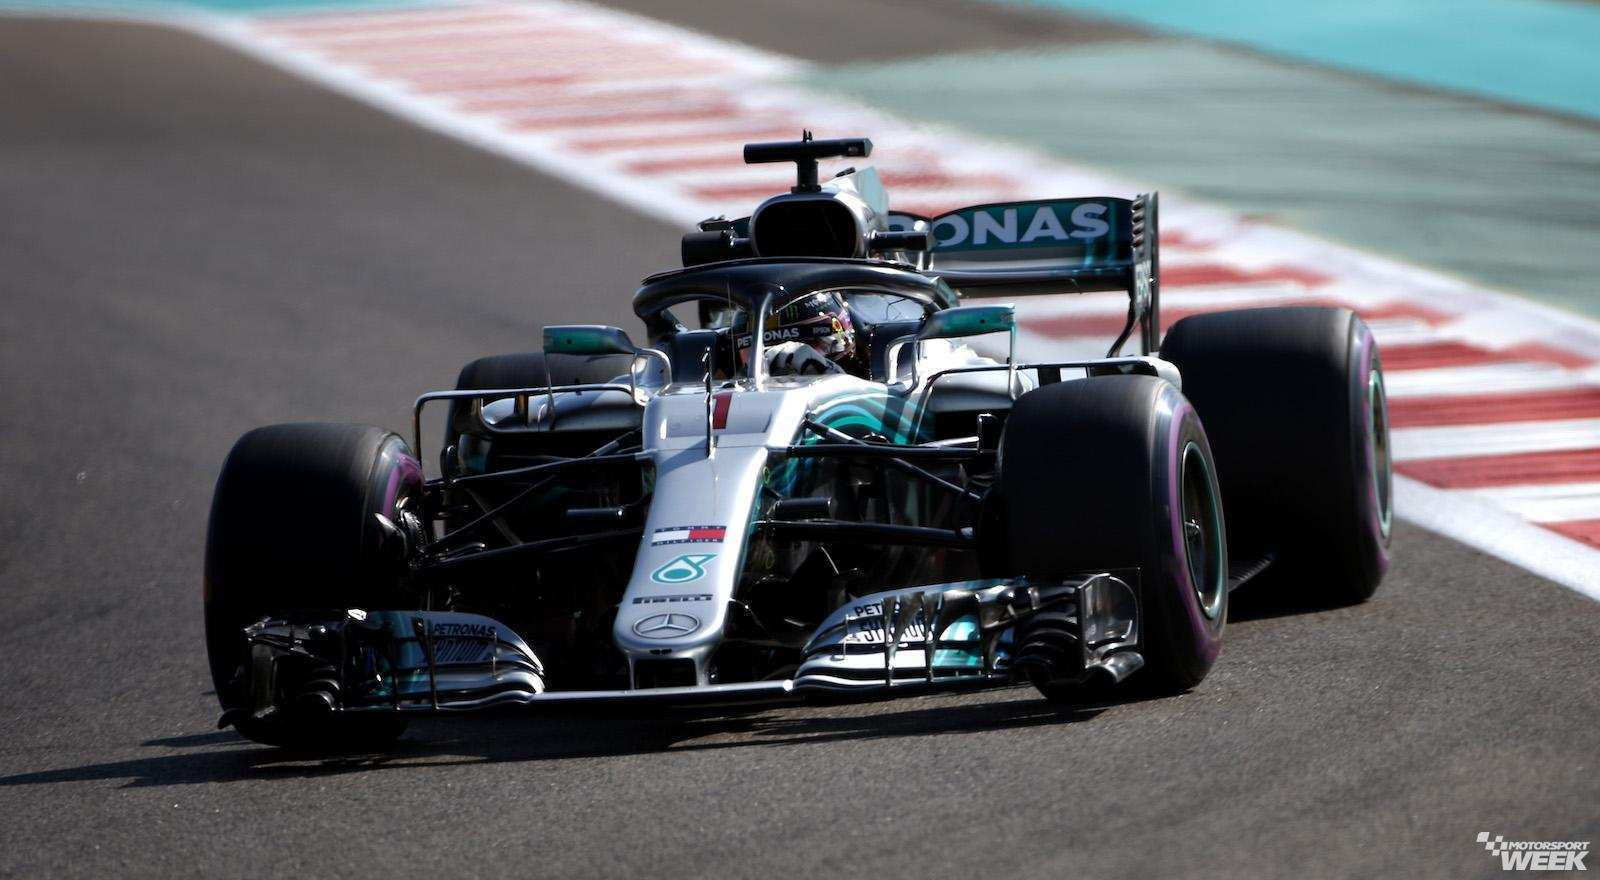 82 Gallery of F1 Mercedes 2019 Release Date And Specs Reviews by F1 Mercedes 2019 Release Date And Specs